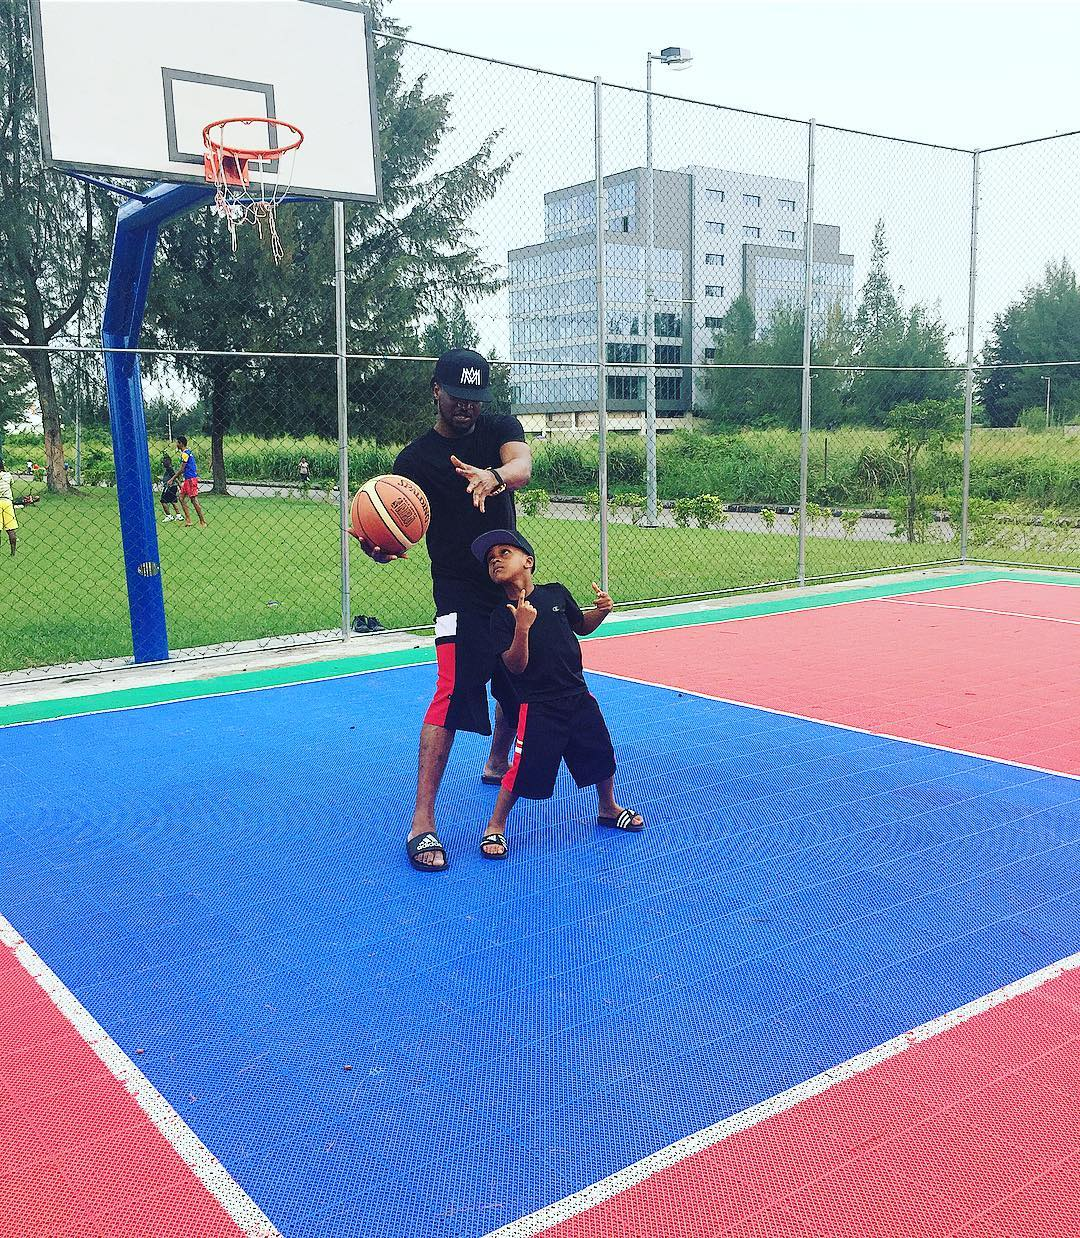 Paul Okoye and his son, Andre hang out on a basketball court (photos)